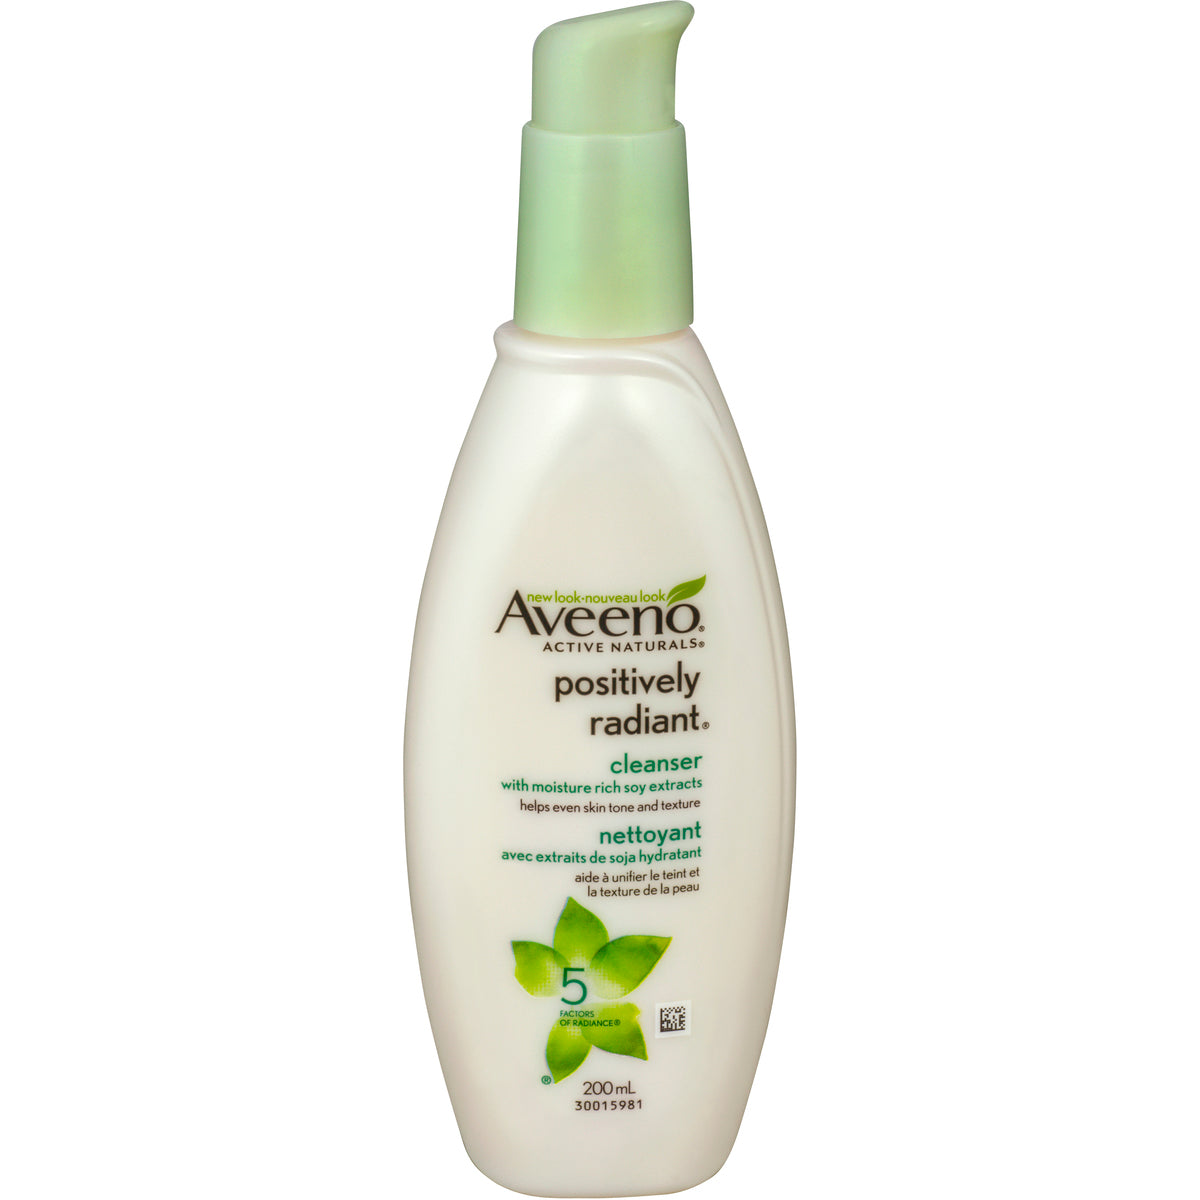 Aveeno Active Naturals Positively Radiant Cleanser 200mL